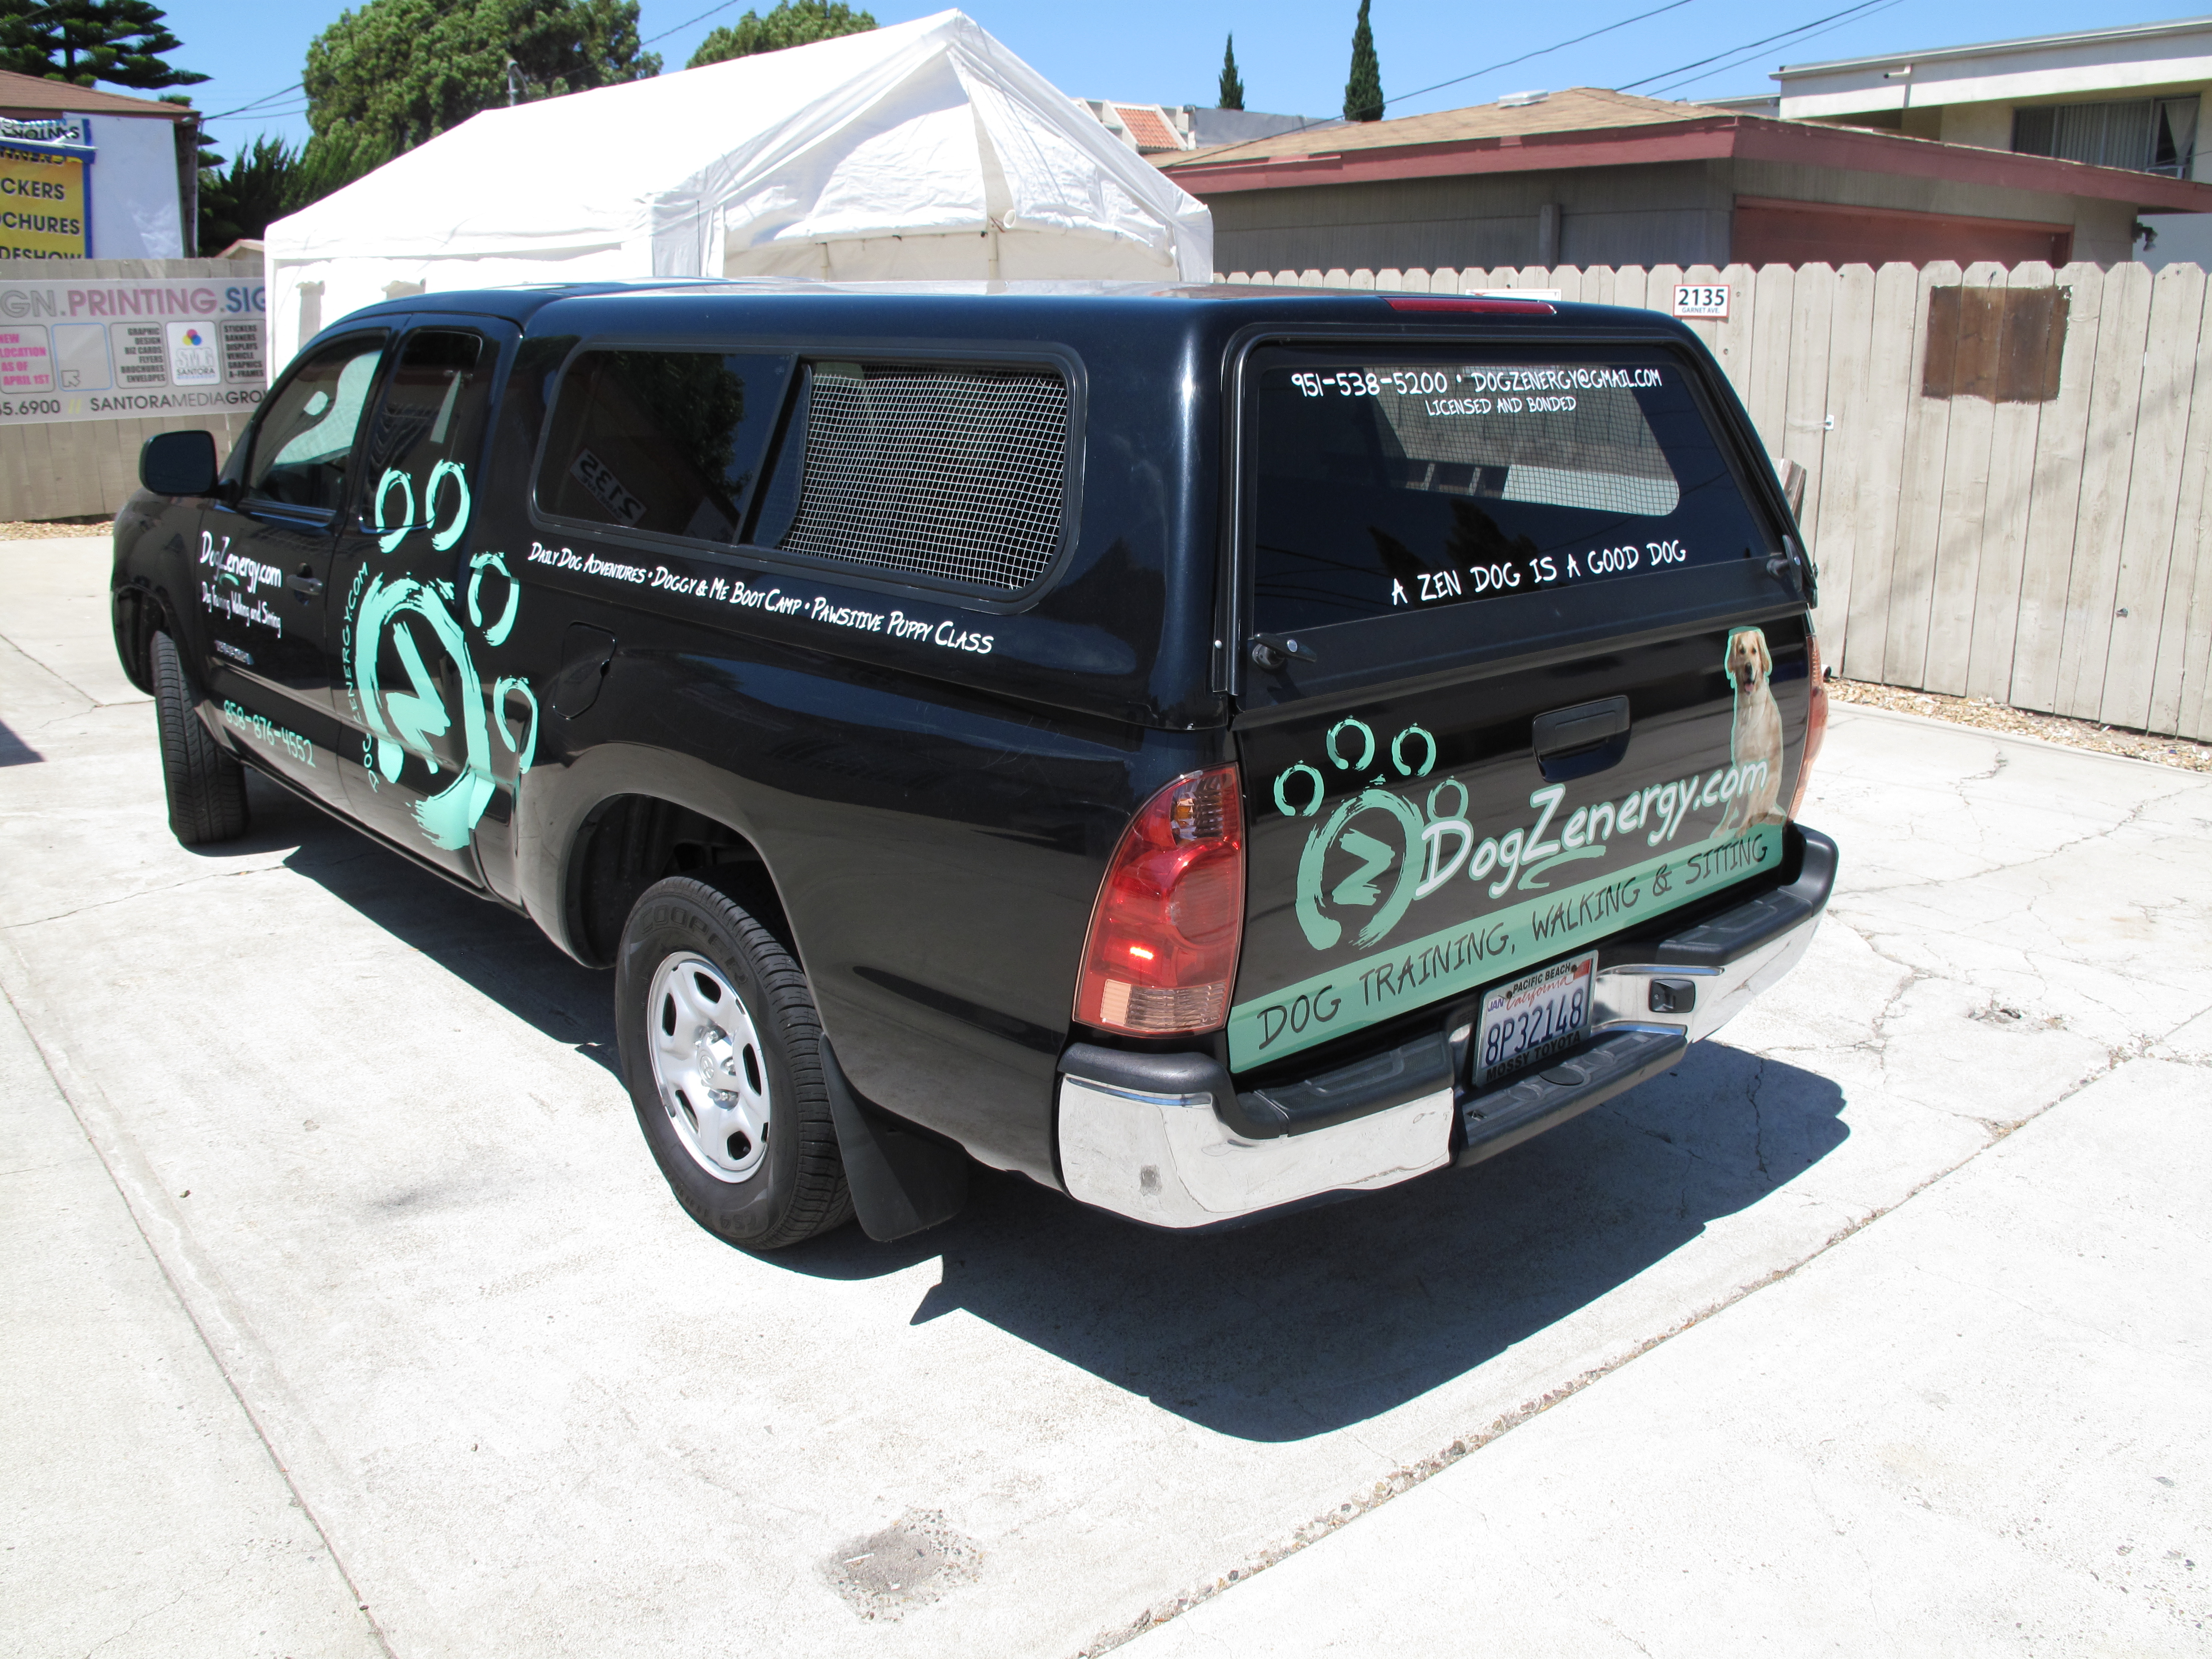 Oem Van Conversions And Upgrades San Diego